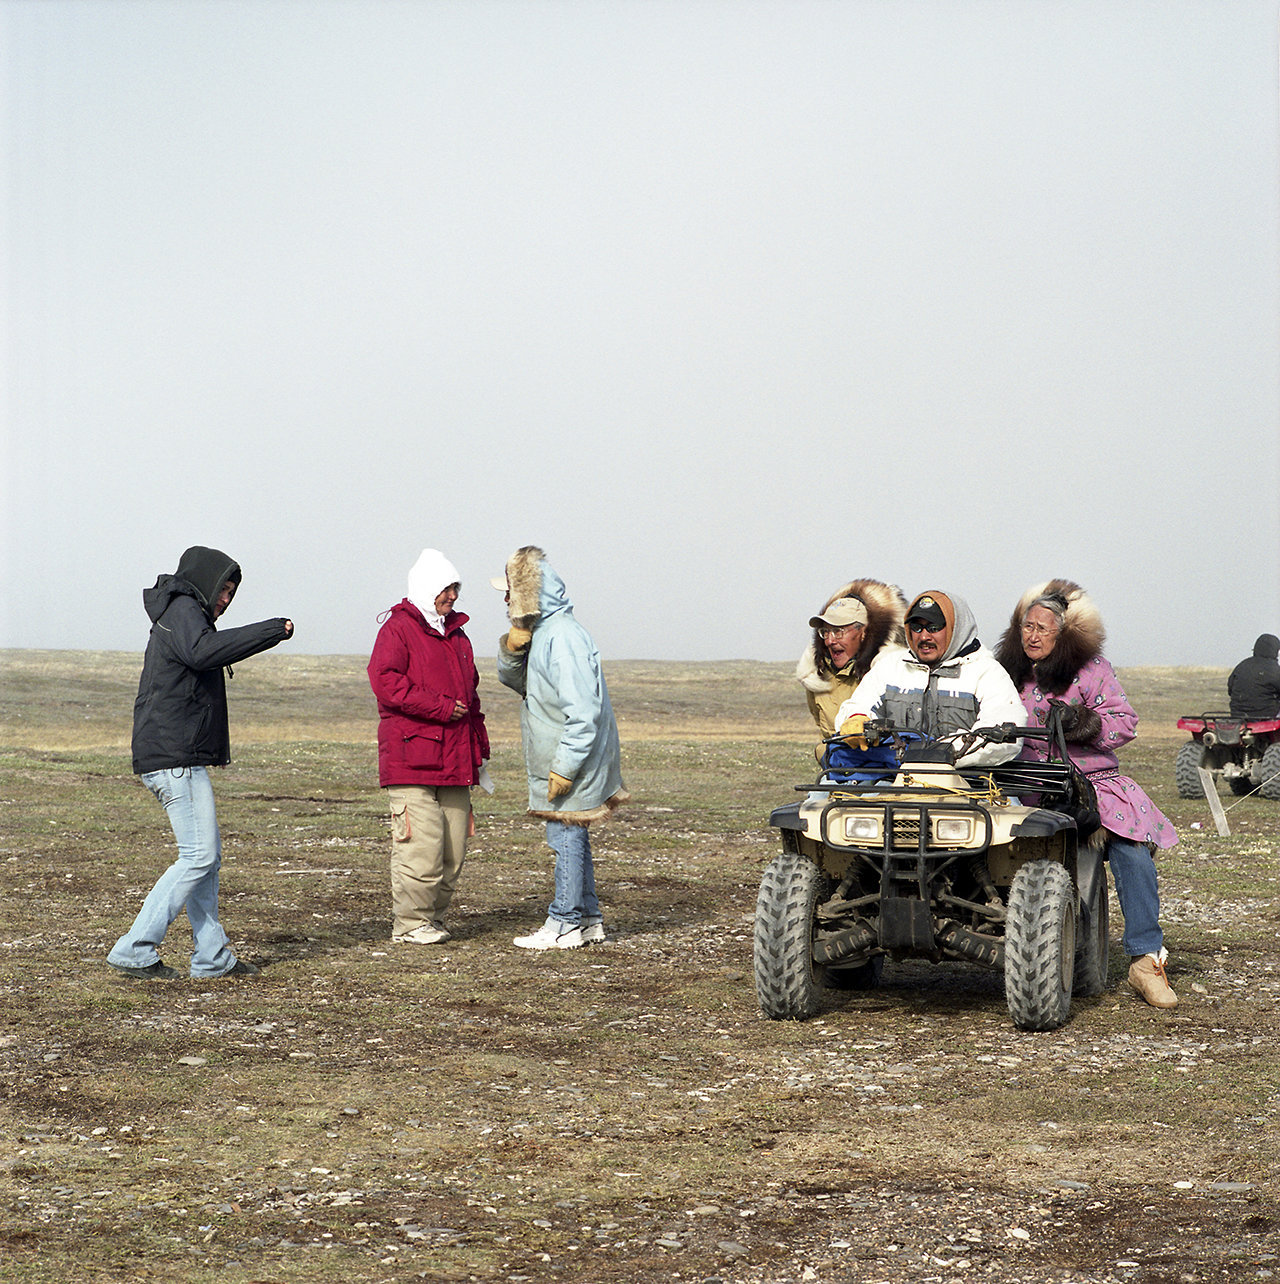 The Koonook family at Kagruk, 2009